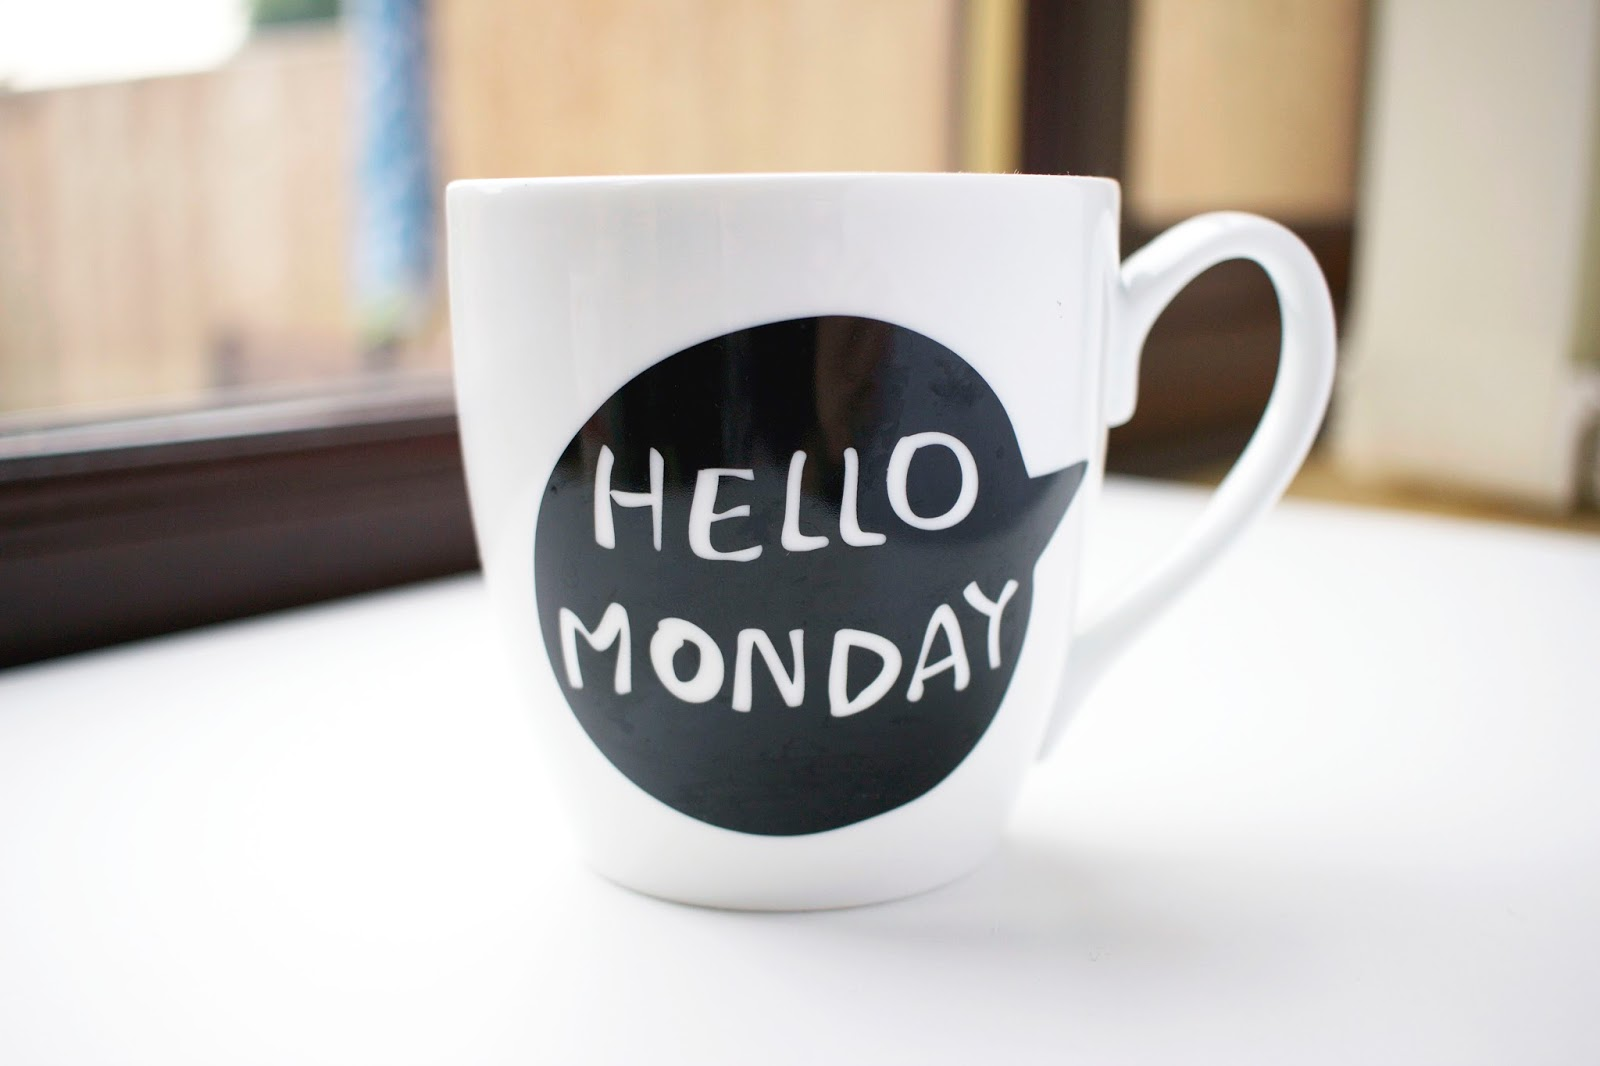 Hello Monday, Summer Goals, Summer Holiday, Lifestyle blog, Goals, Positivity, Life, Monday, Monday mug, Hello Monday Mug, Primark,